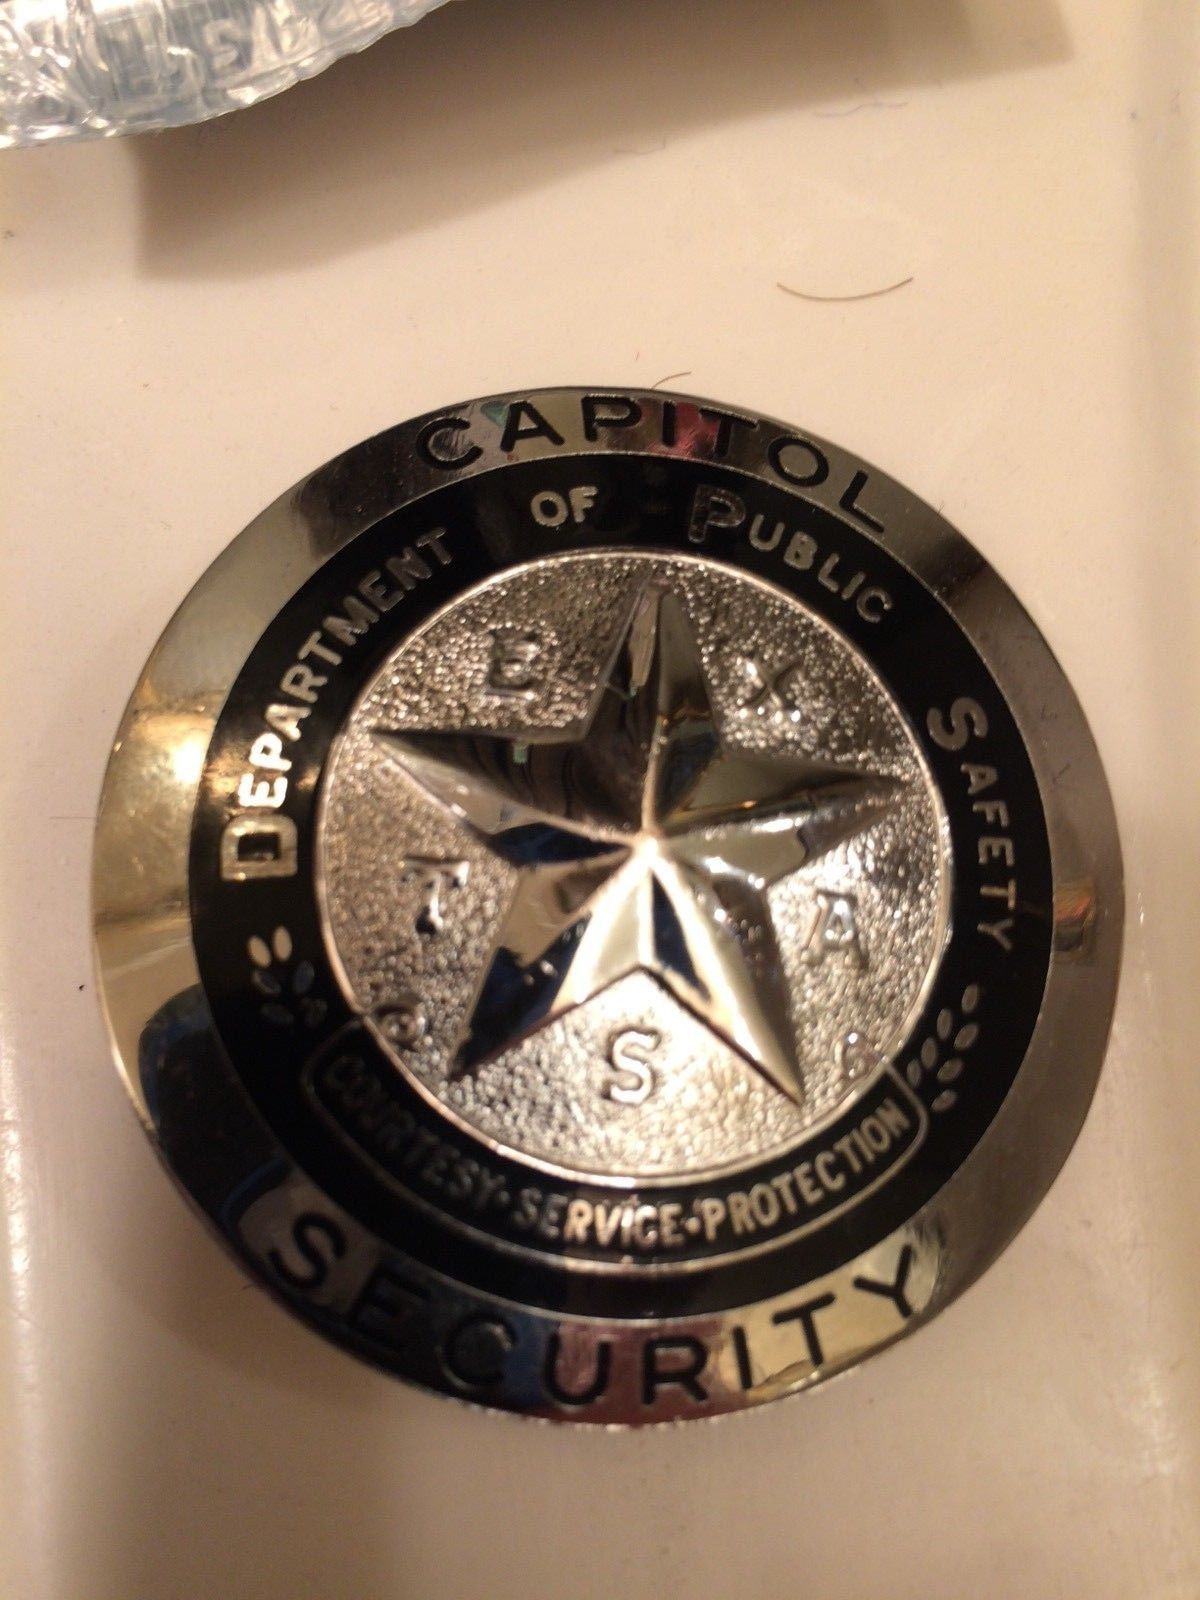 Capitol Security, Texas Department of Public Safety